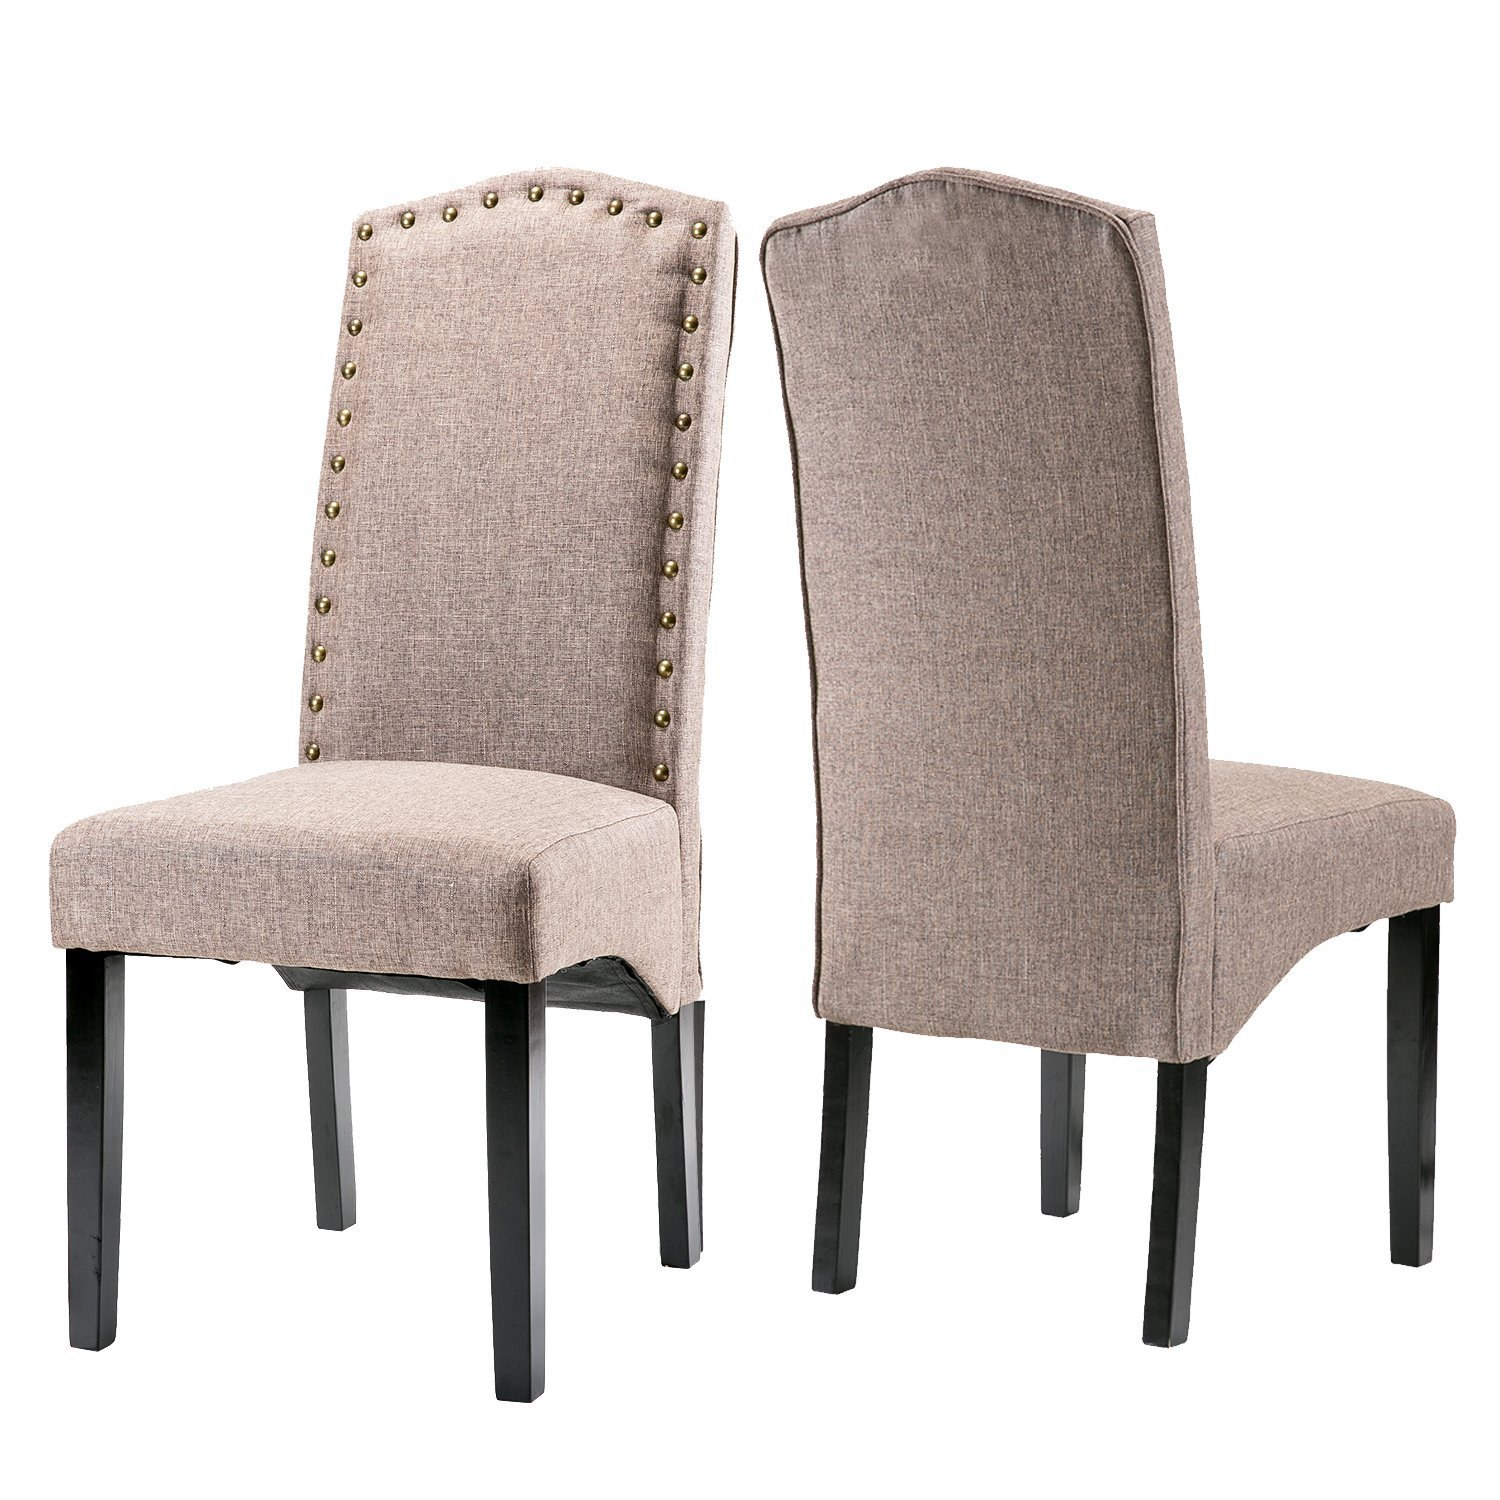 Script Chair Merax Fabric Dining Chairs Script Chair With Wood Leg Set Of 2